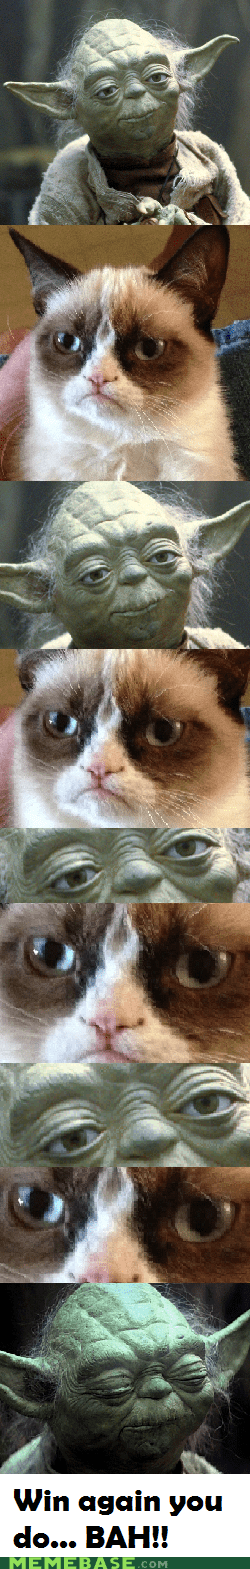 staring constest yoda Grumpy Cat tard - 6791590912